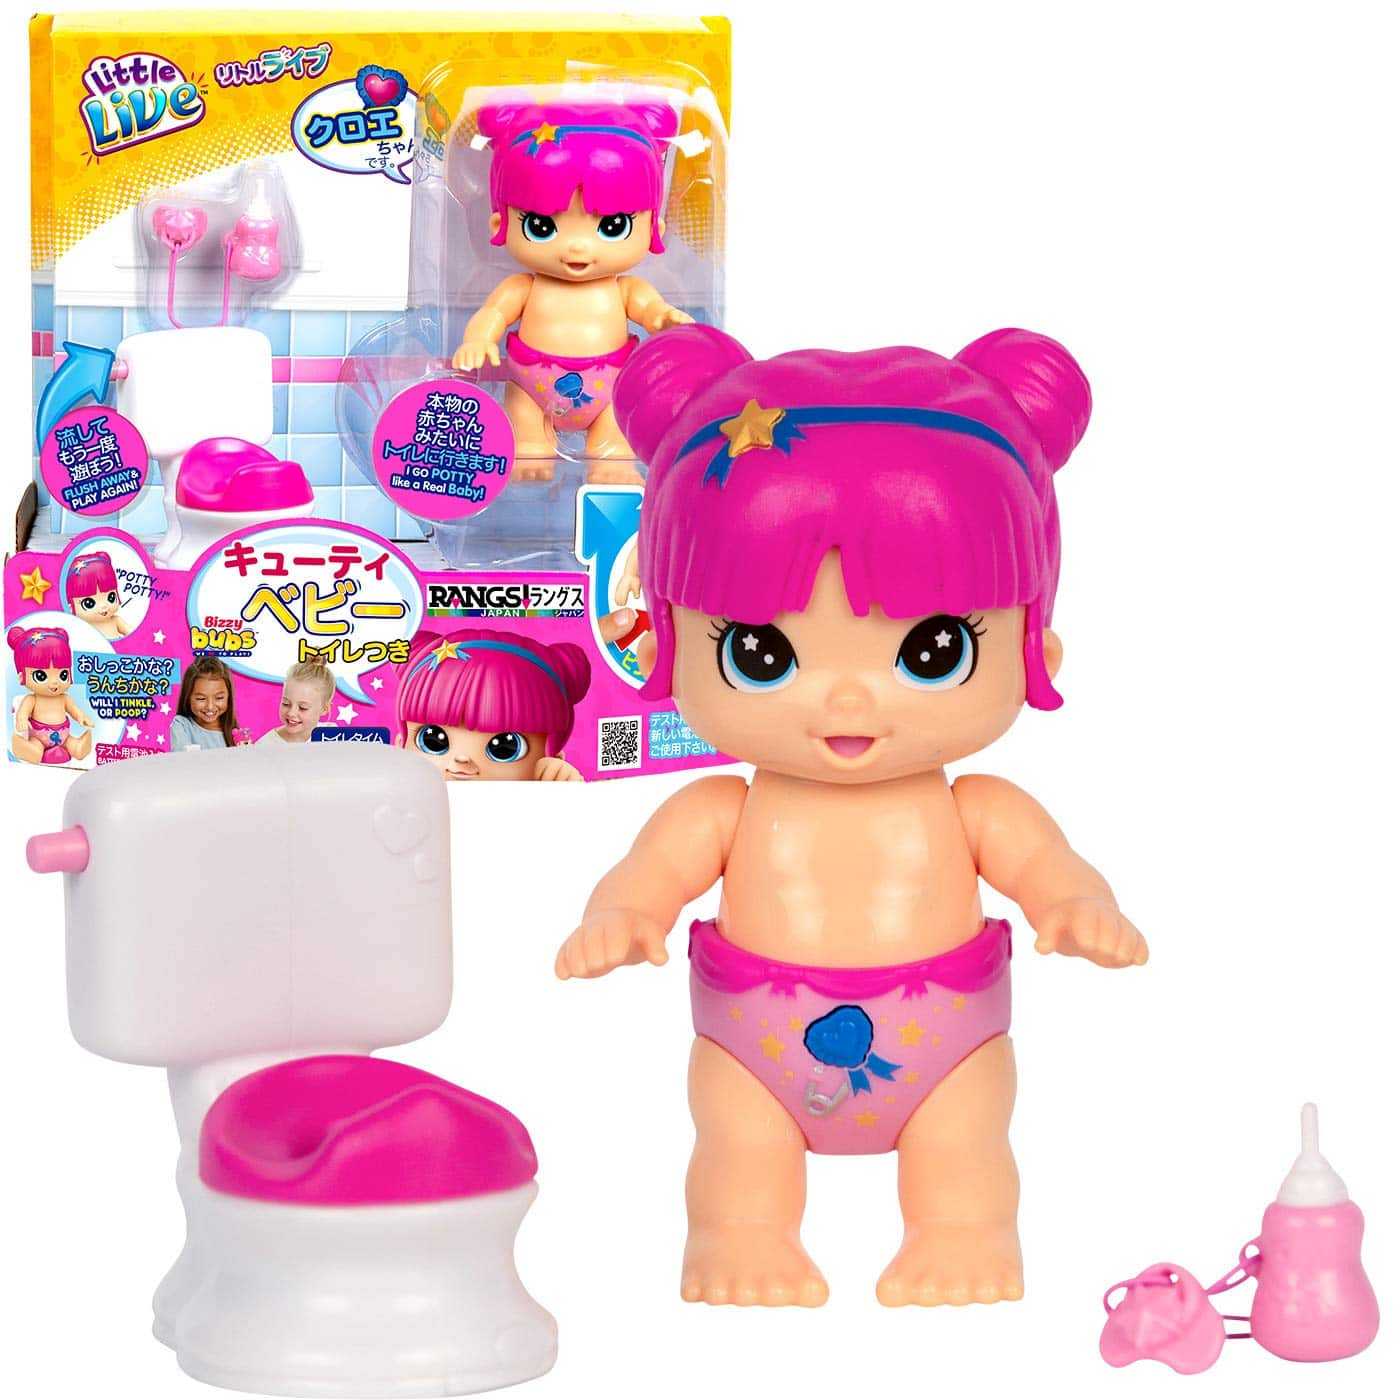 Little Live Bizzy Bubs Season Baby Playset - (Clever Chloe - Potty Time) $5.23 - Amazon *Add On